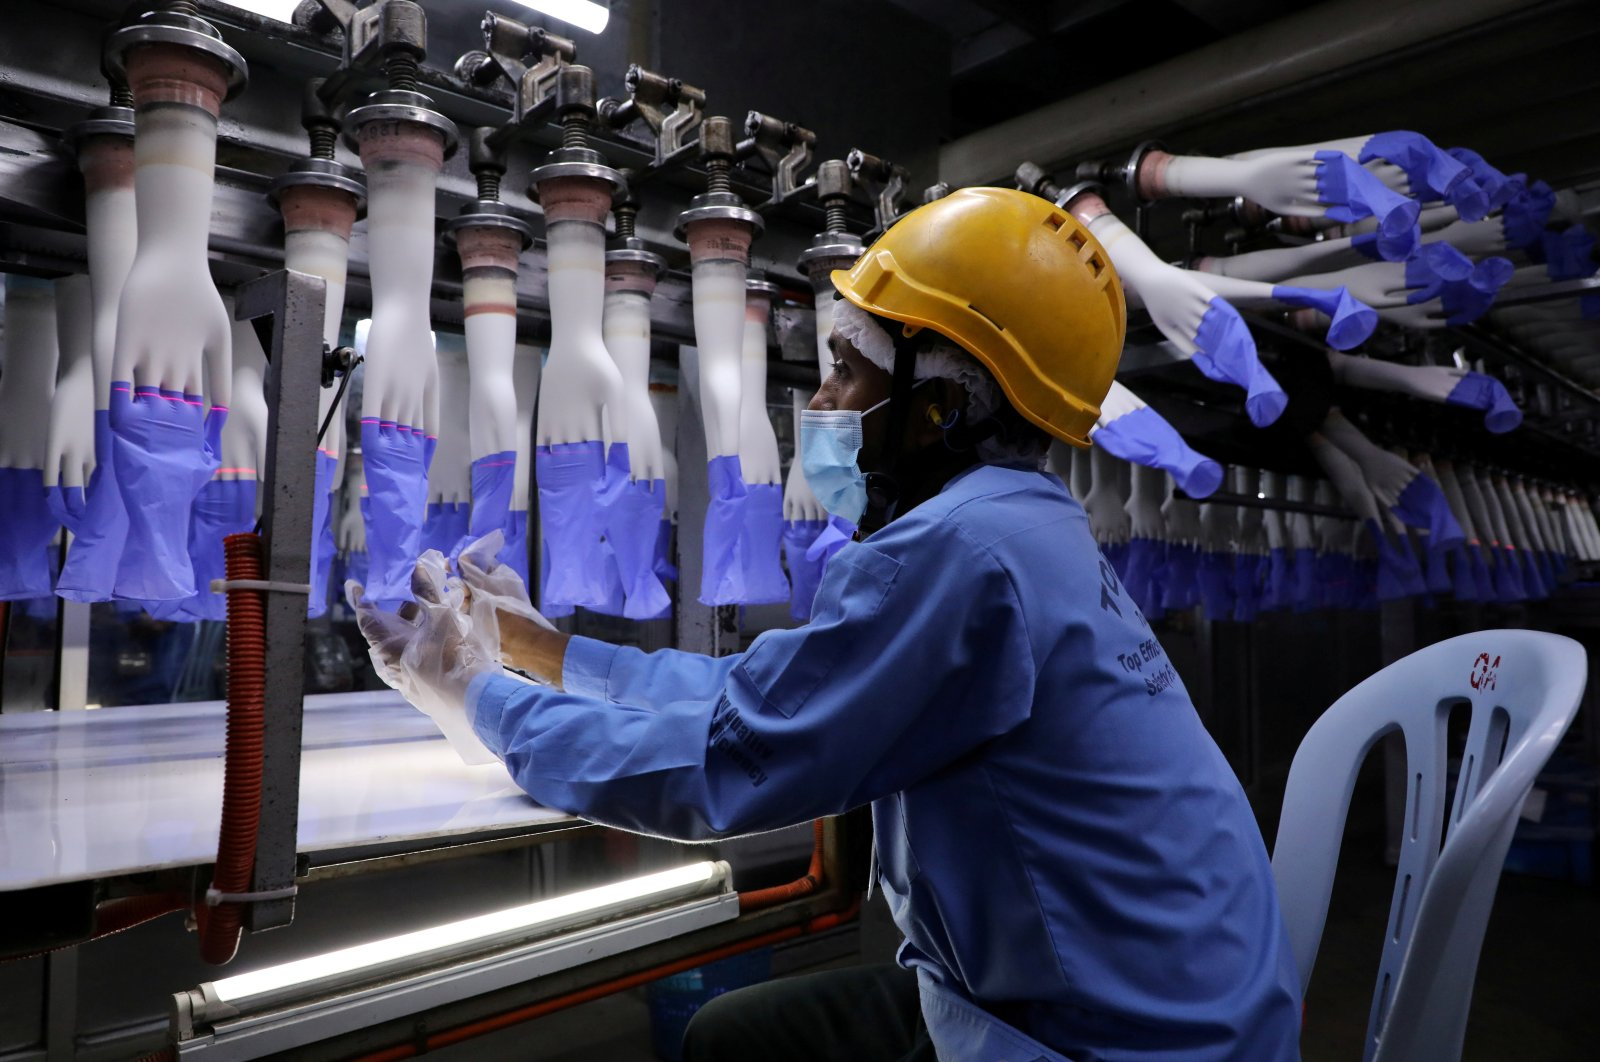 A worker inspects newly-made gloves at Top Glove factory in Shah Alam, Malaysia, Aug. 26, 2020. (Reuters Photo)